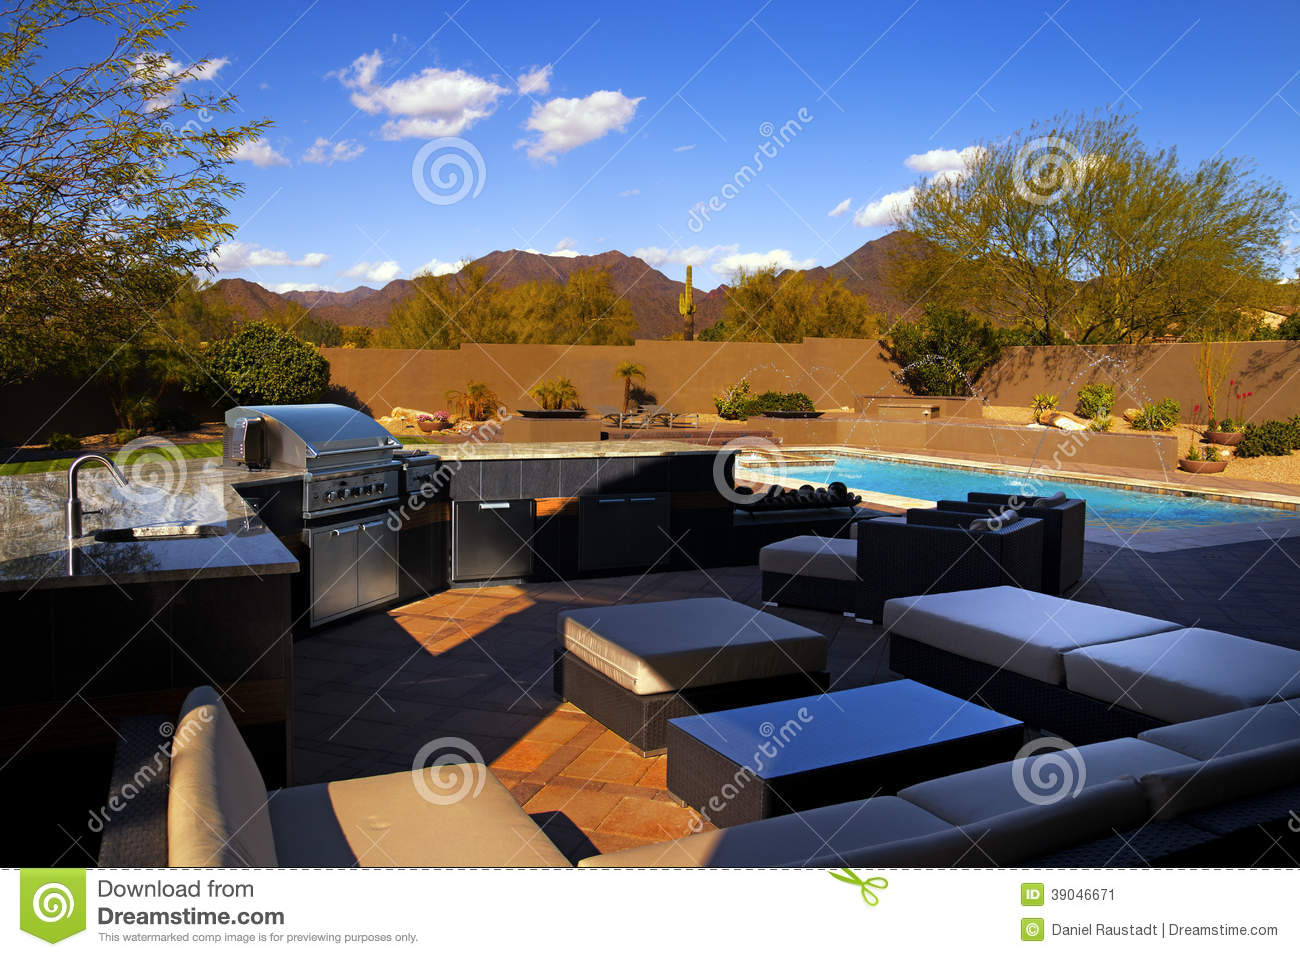 Southwest Home Backyard Pool And Patio Stock Photo  Image